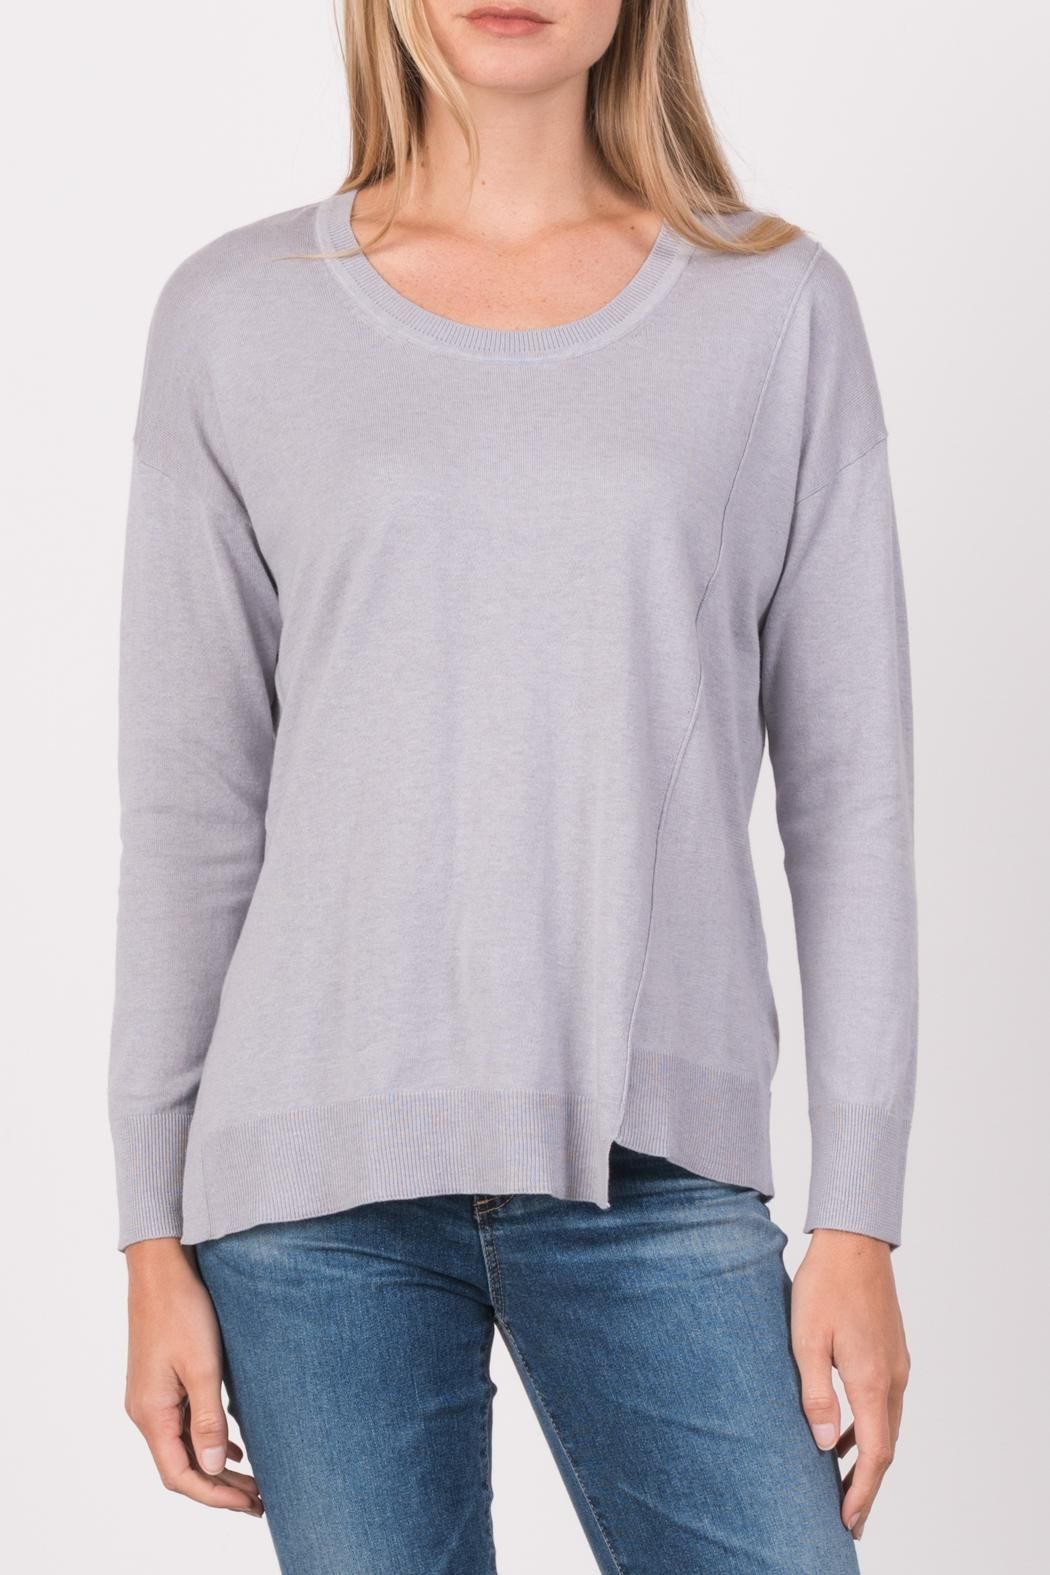 Margaret O'Leary Exie Scoop Pullover - Front Cropped Image